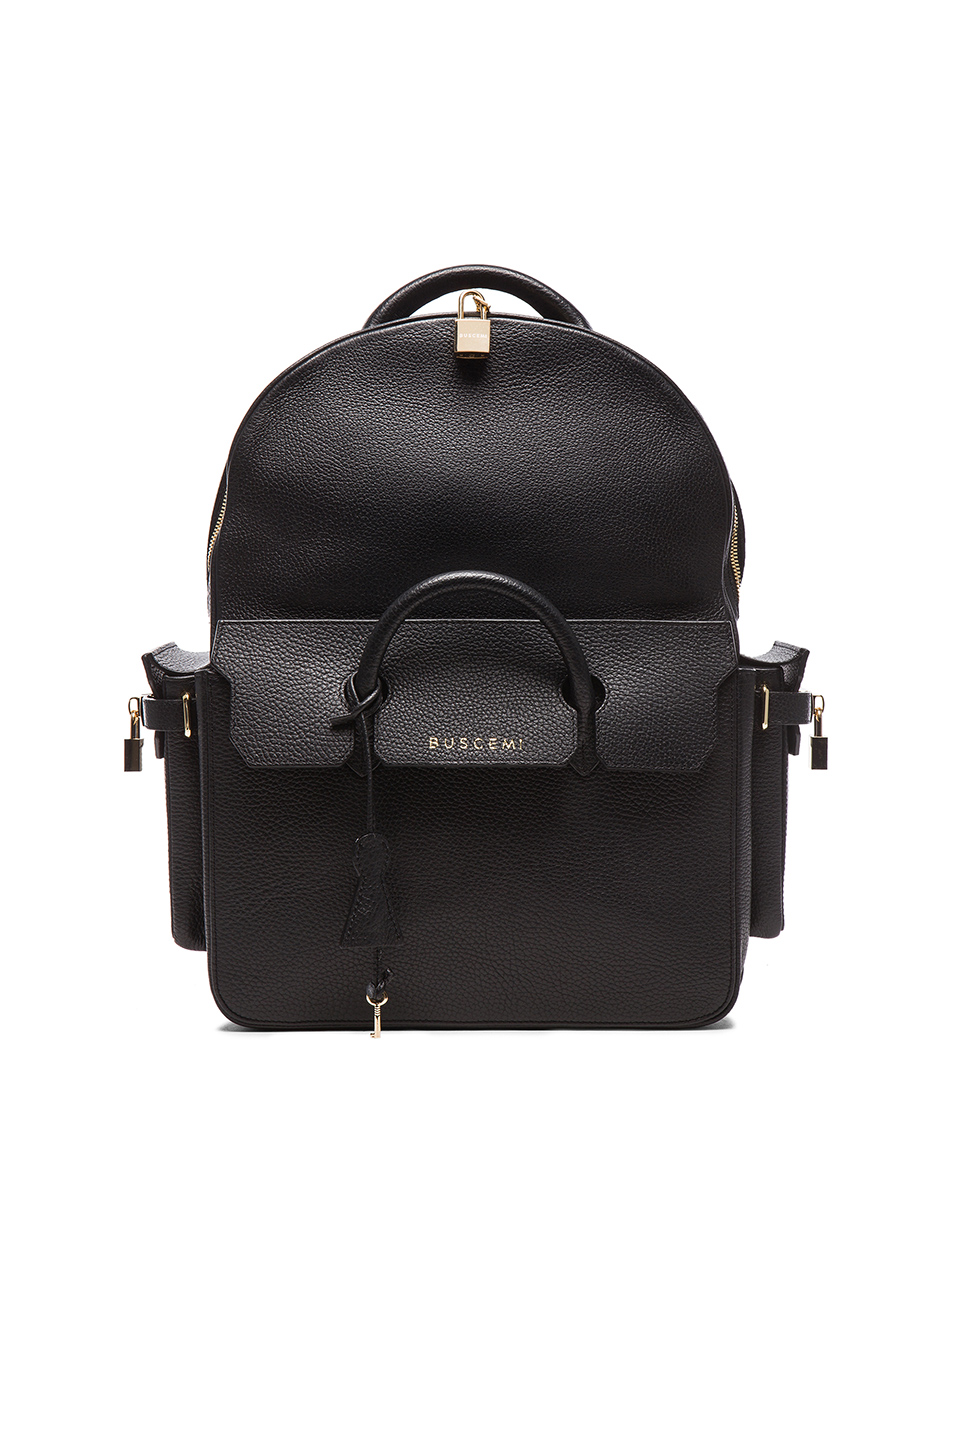 Buscemi PHD Backpack in Black